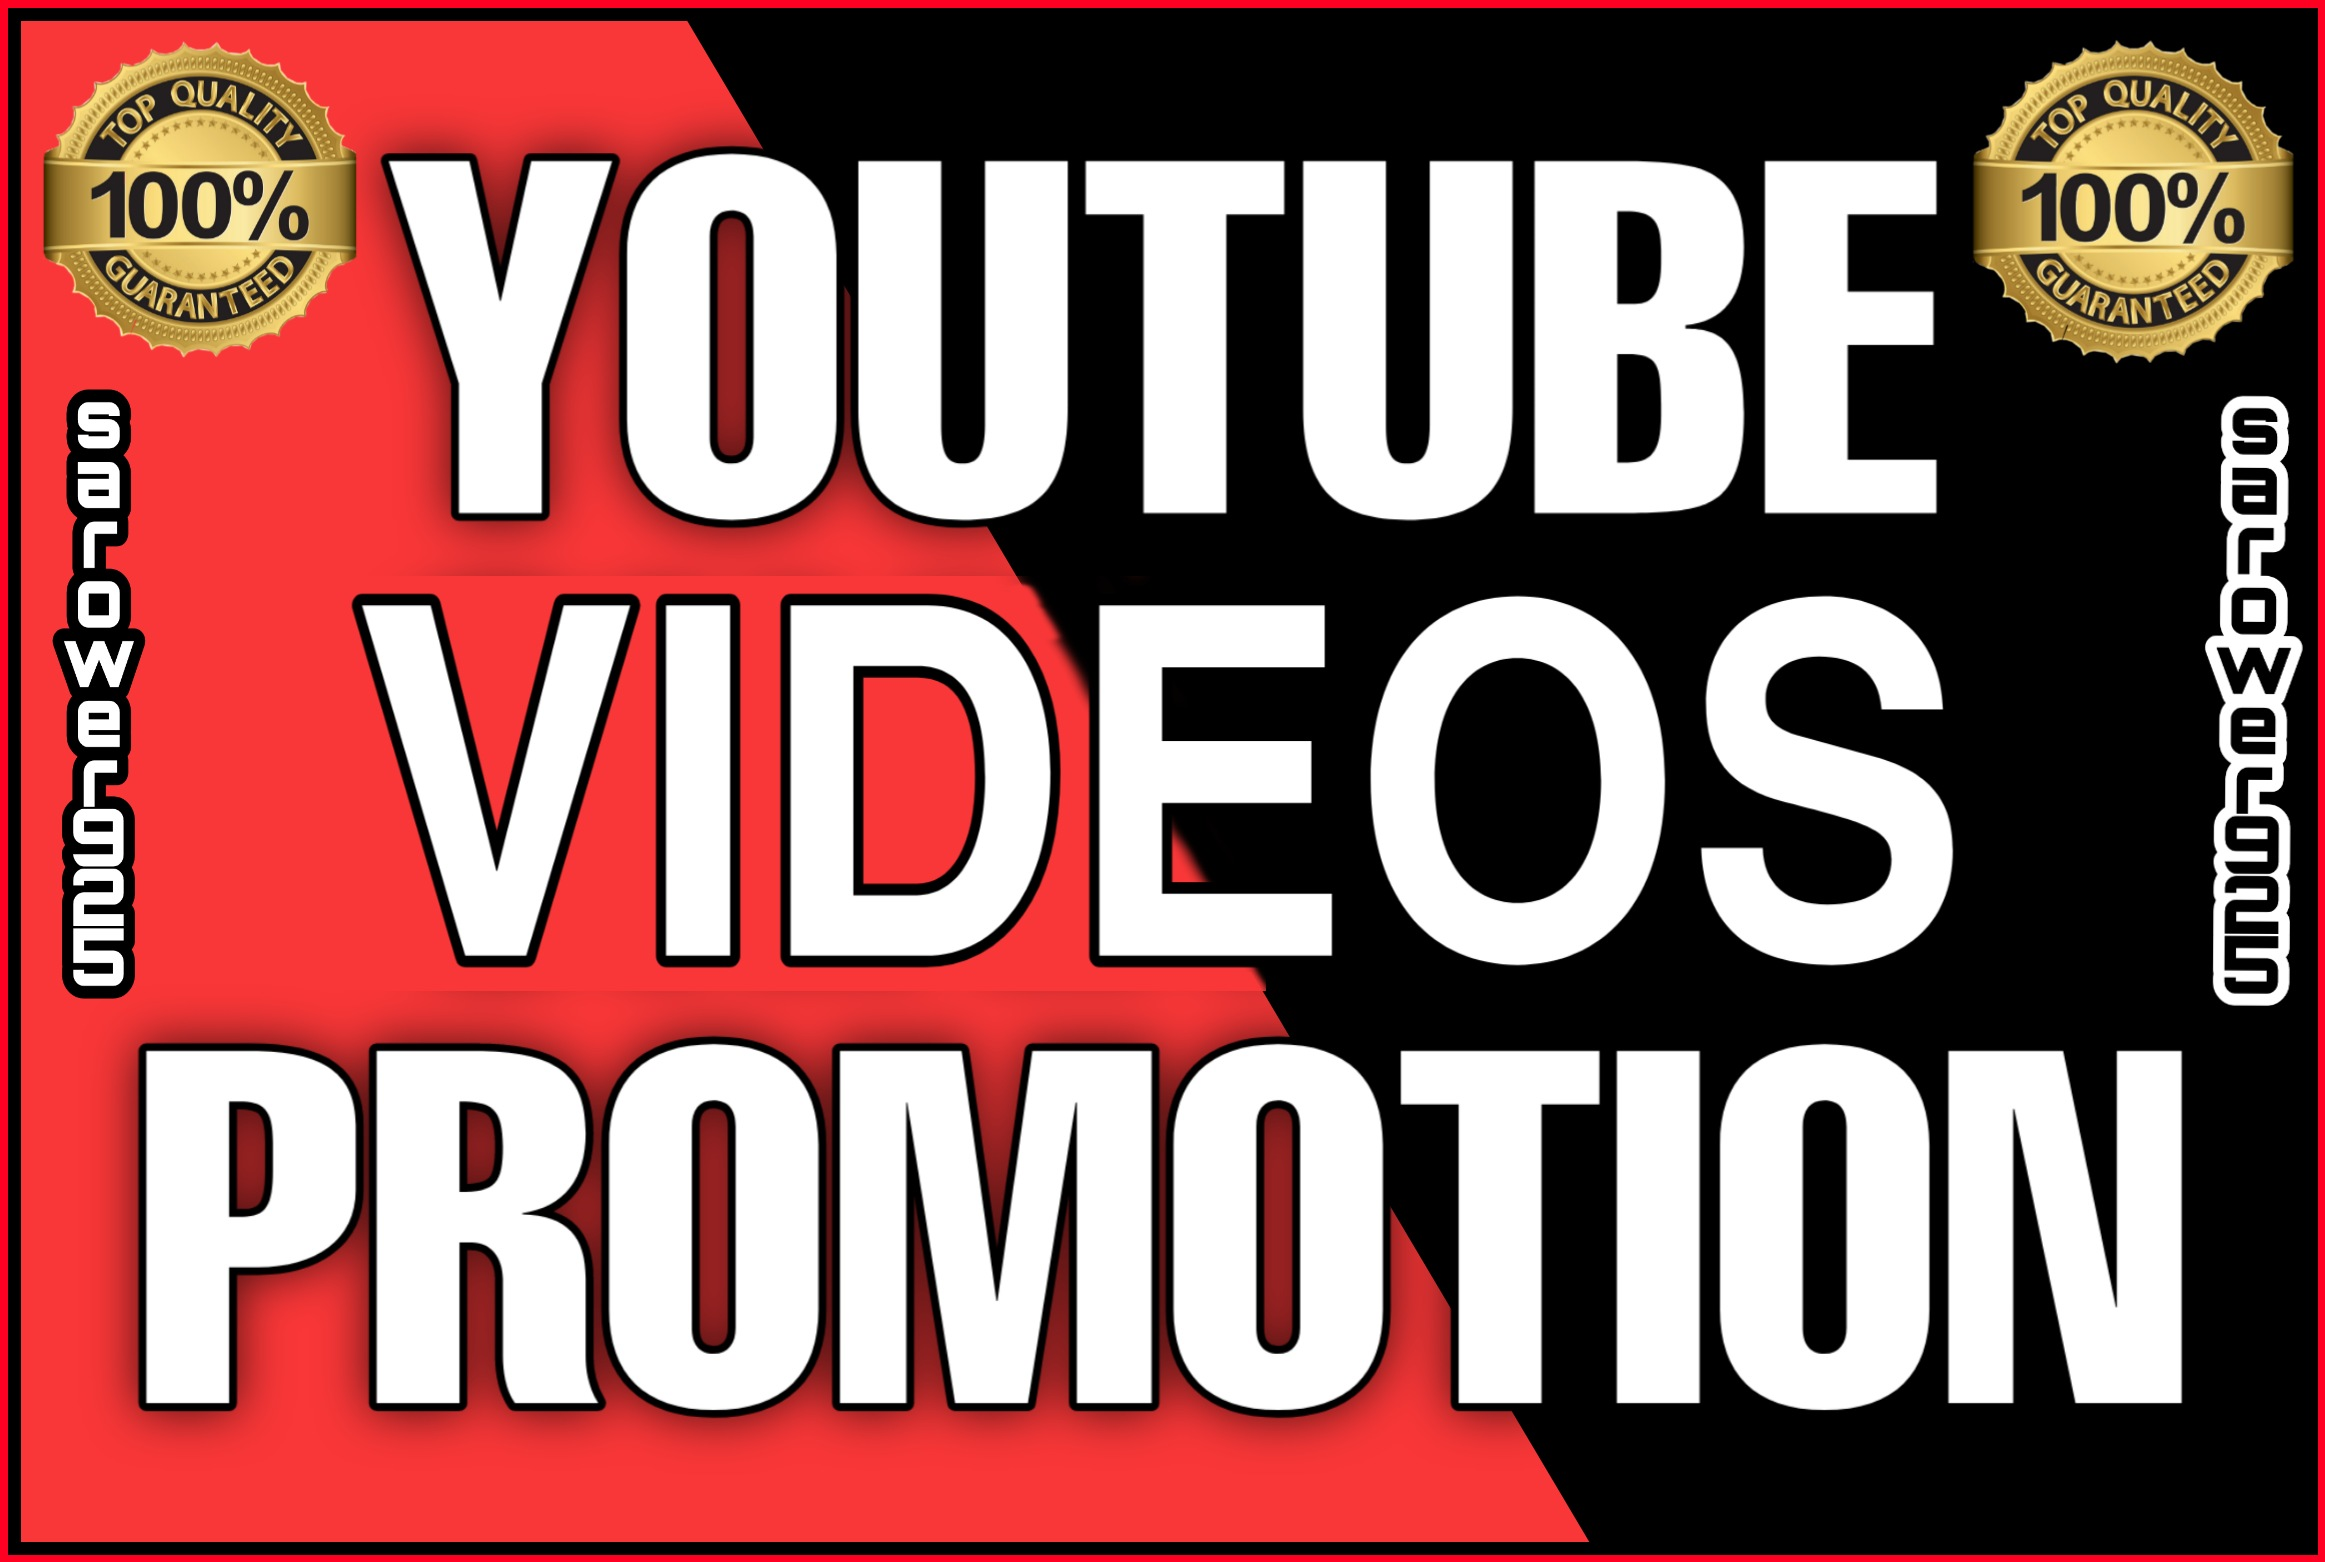 High quality permanent youtube videos marketing and promotion